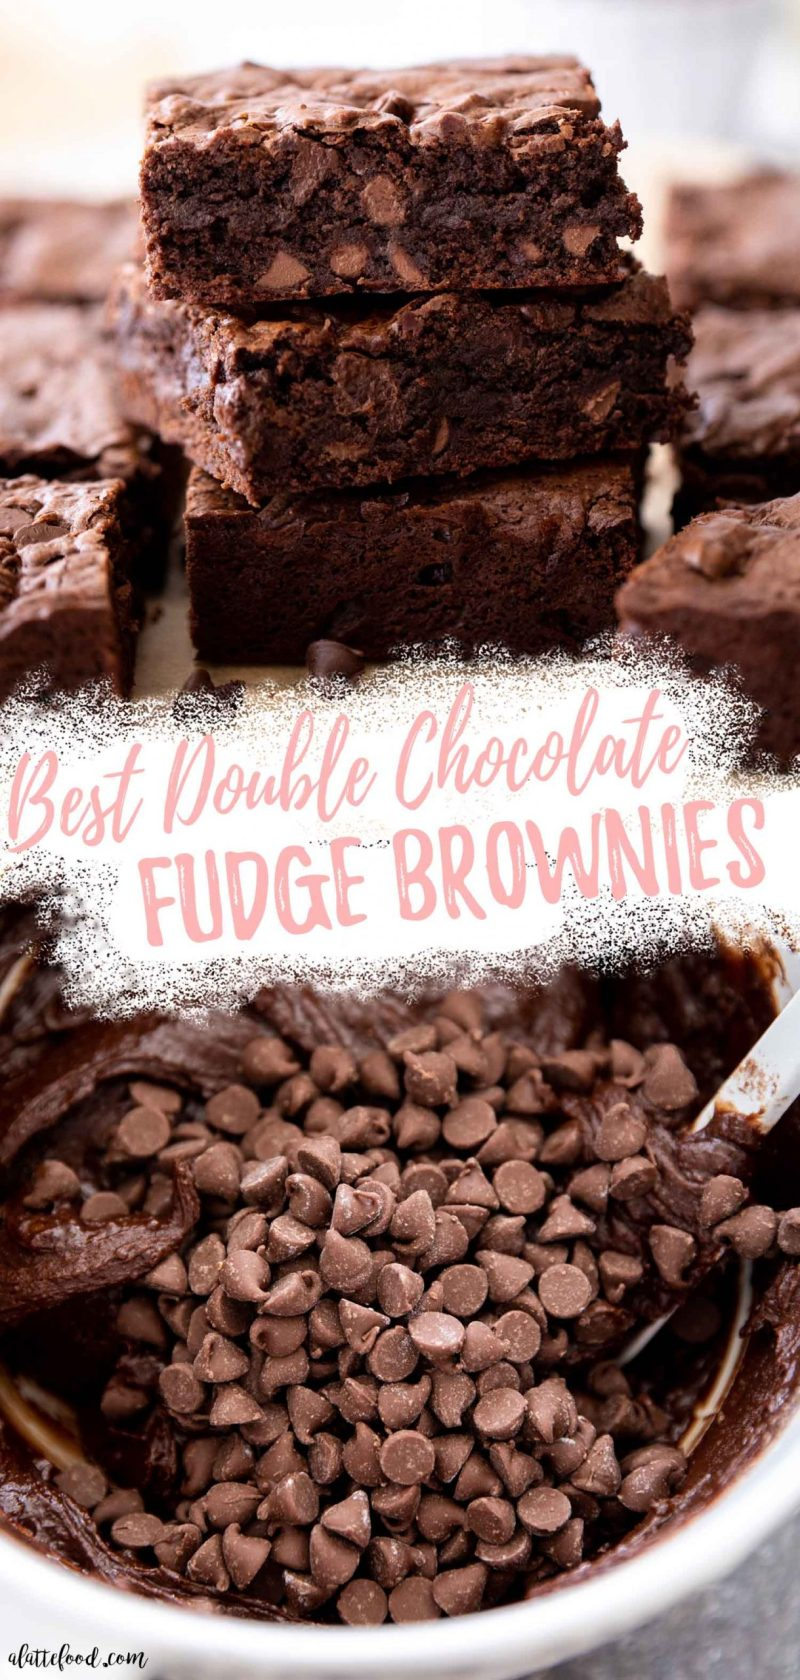 stack of double chocolate fudge brownies and brownie batter in a white bowl collage